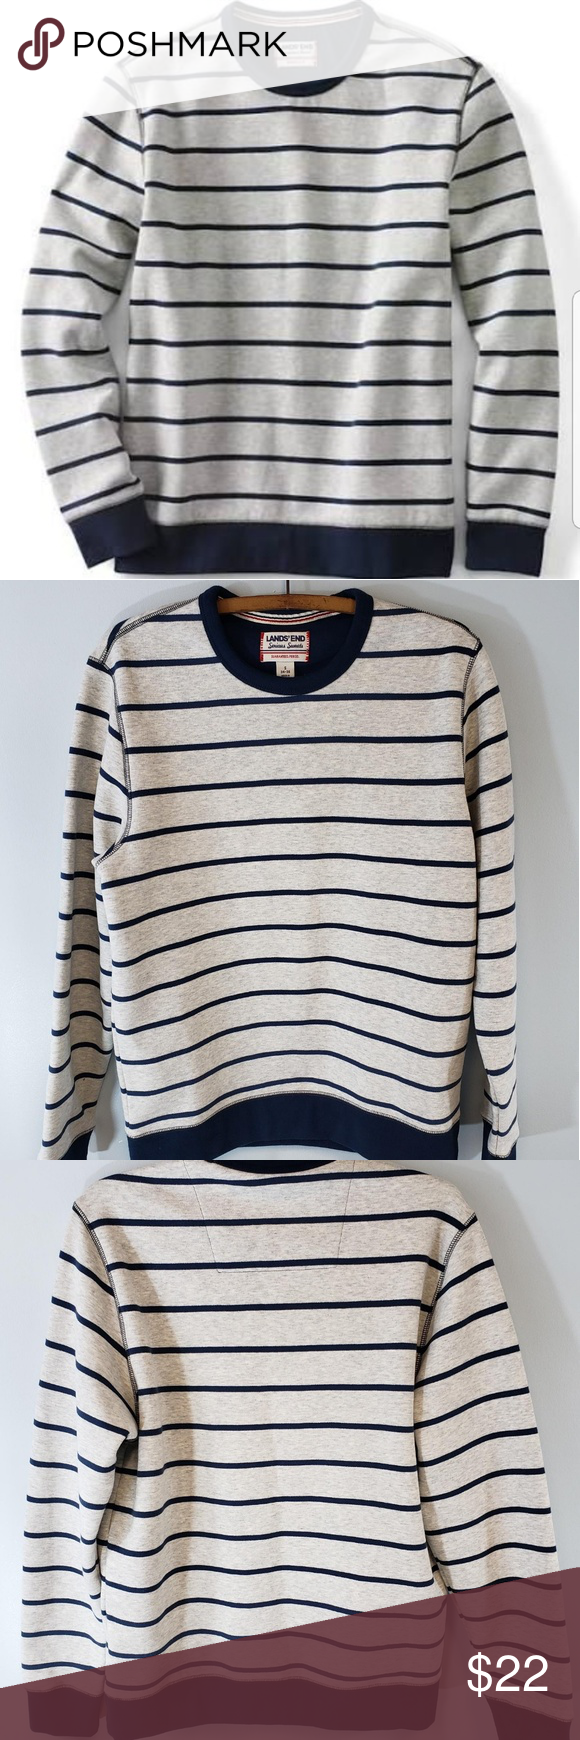 Lands End Serious Sweats Striped Pull Over Mens Clothes Design Striped Sweatshirt Shirt [ 1740 x 580 Pixel ]